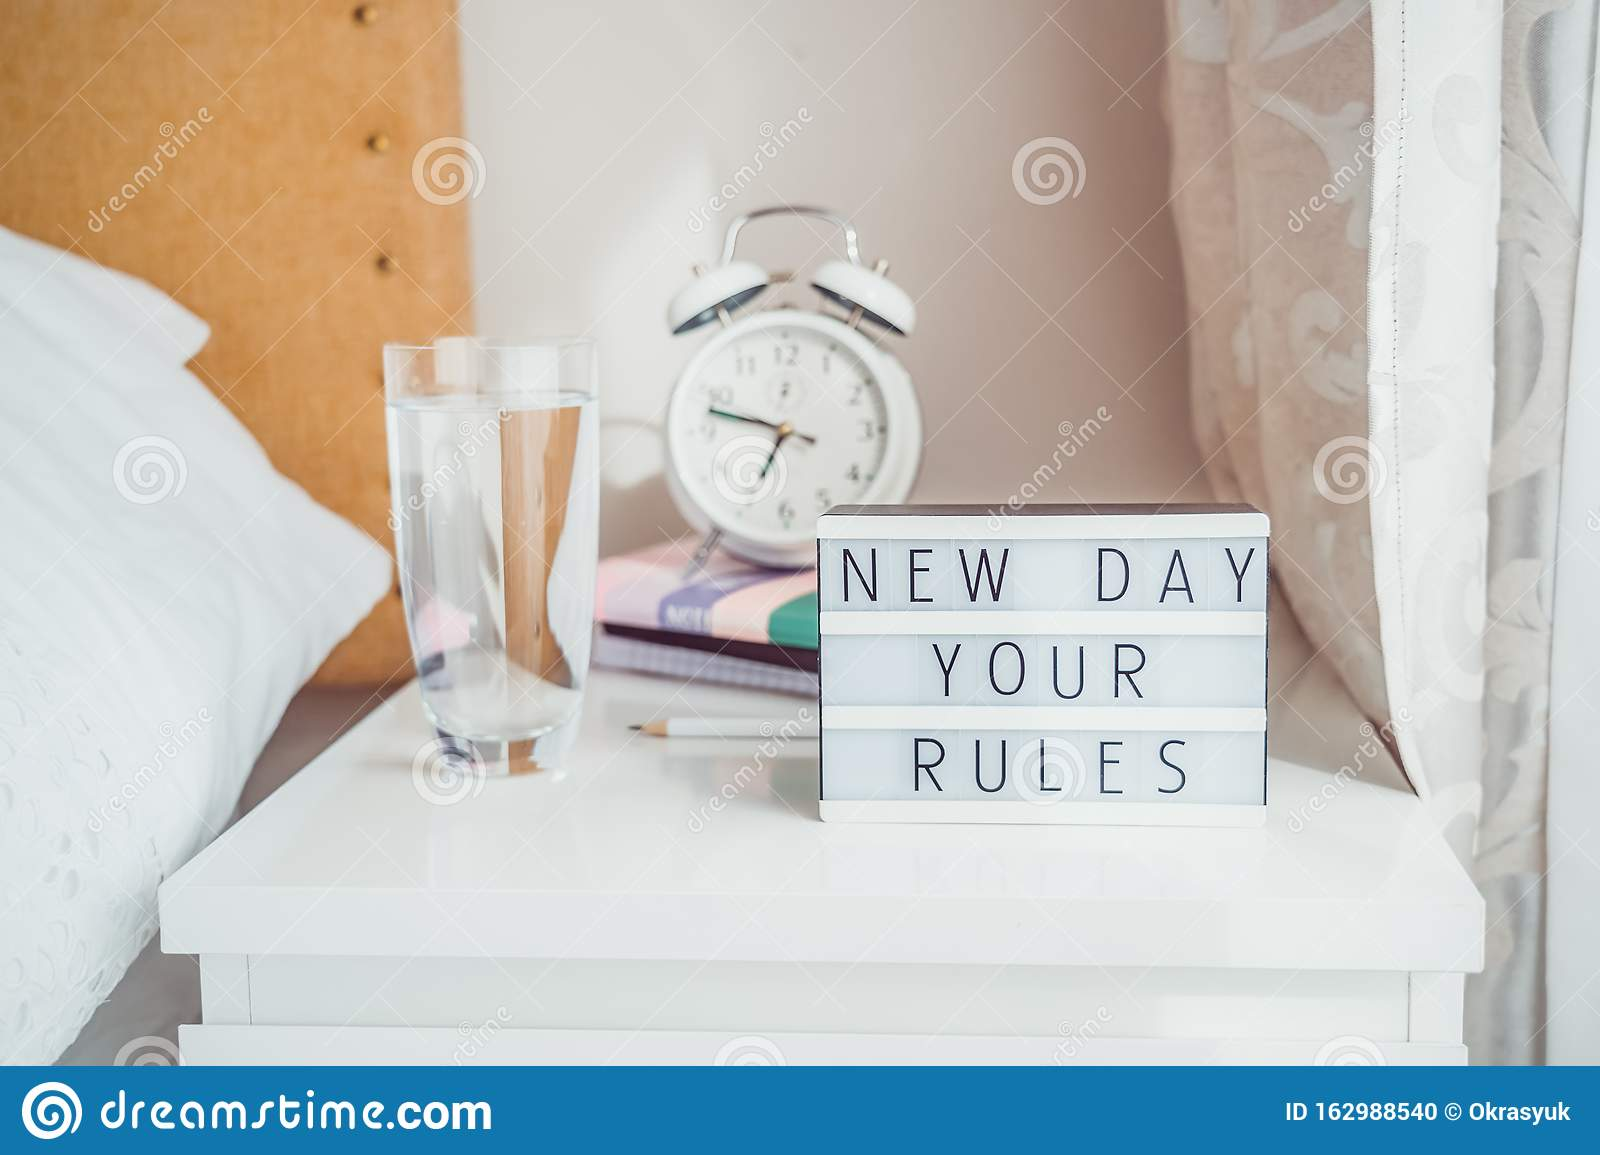 Good morning concept. Inspiration Motivational Life Quotes New day your rules message on lightened box with alarm clock, notebooks